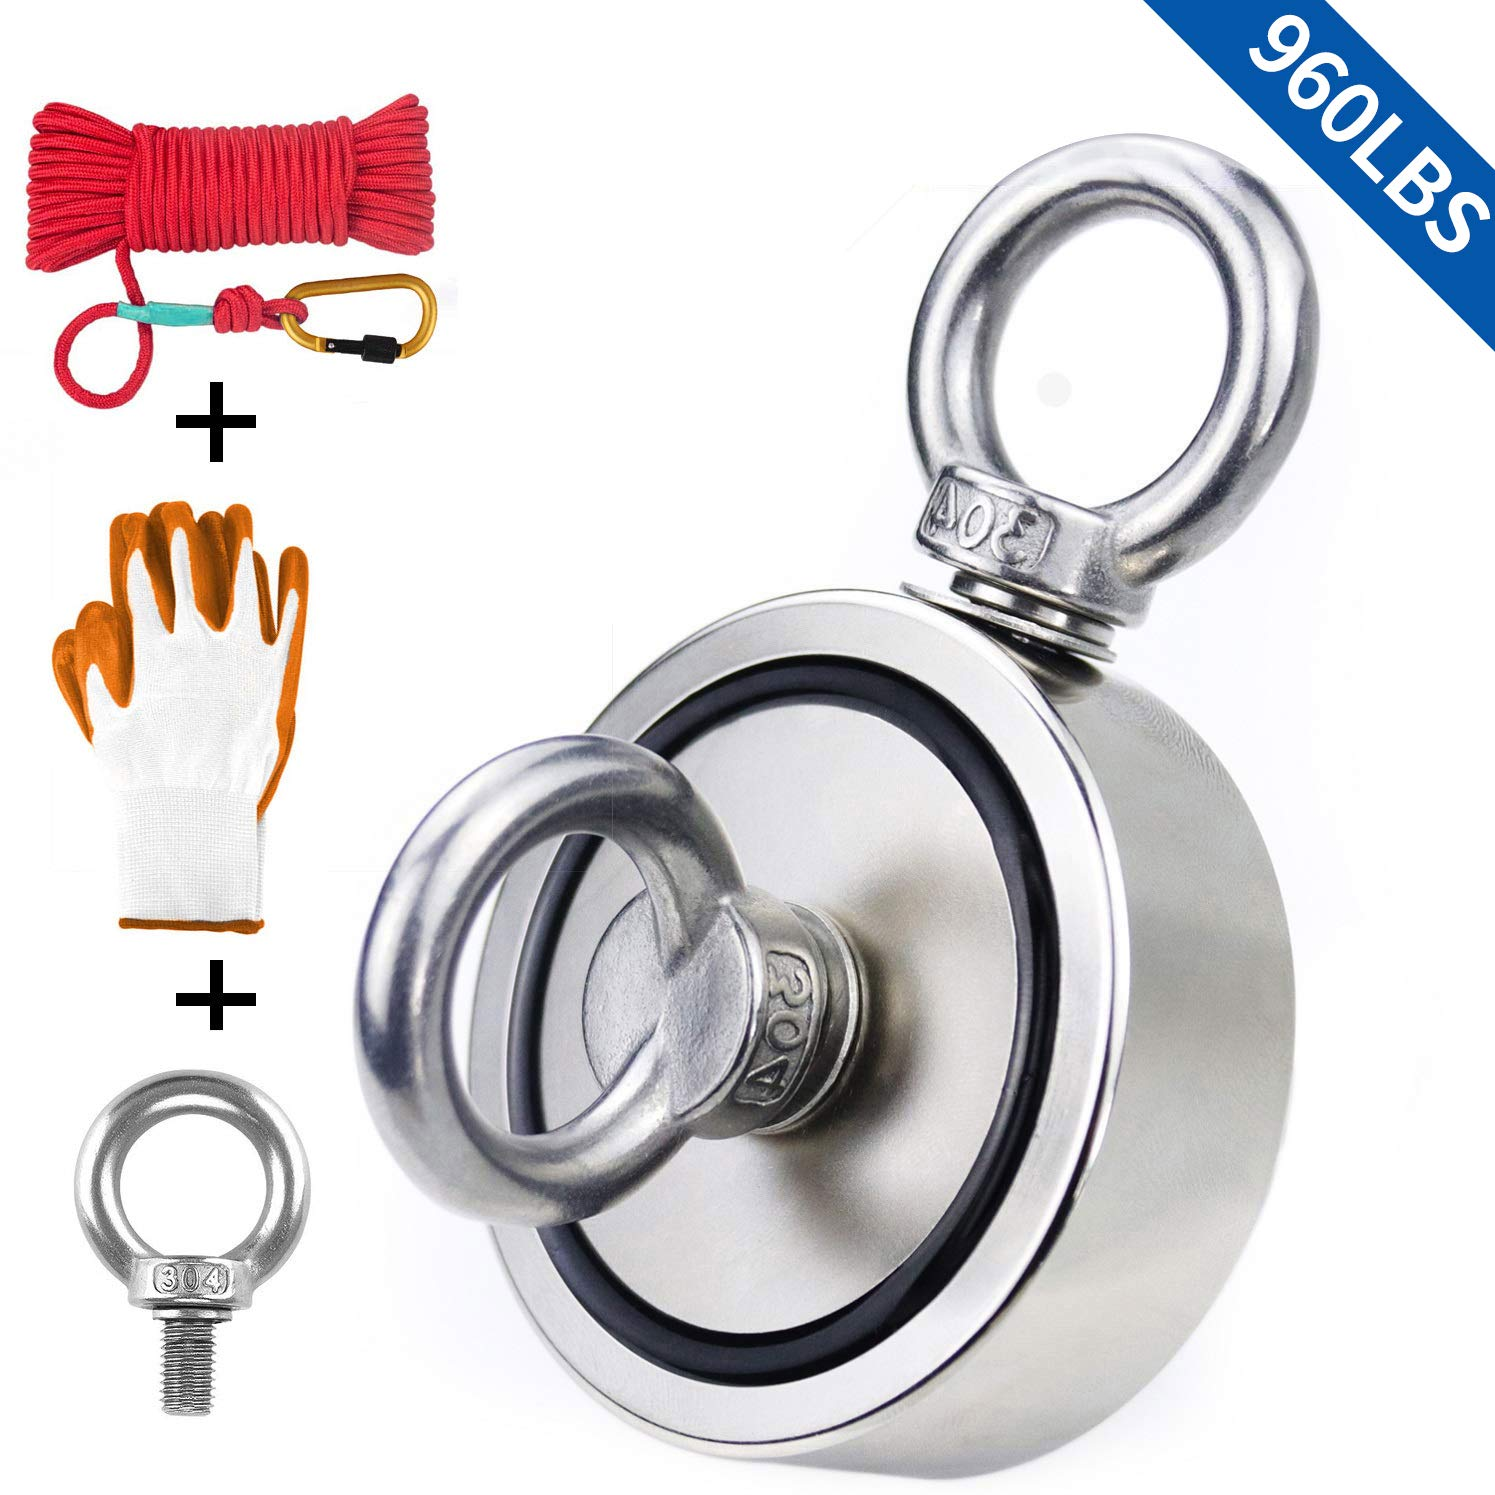 Fishing Magnet with Rope & Gloves, 960lbs Pulling Force Double Sided Super Strong Round Rare Earth Neodymium Magnet with Eyebolt for Magnetic Fishing, River, Lake, Salvage, 2.95'' Diameter by KYGNE